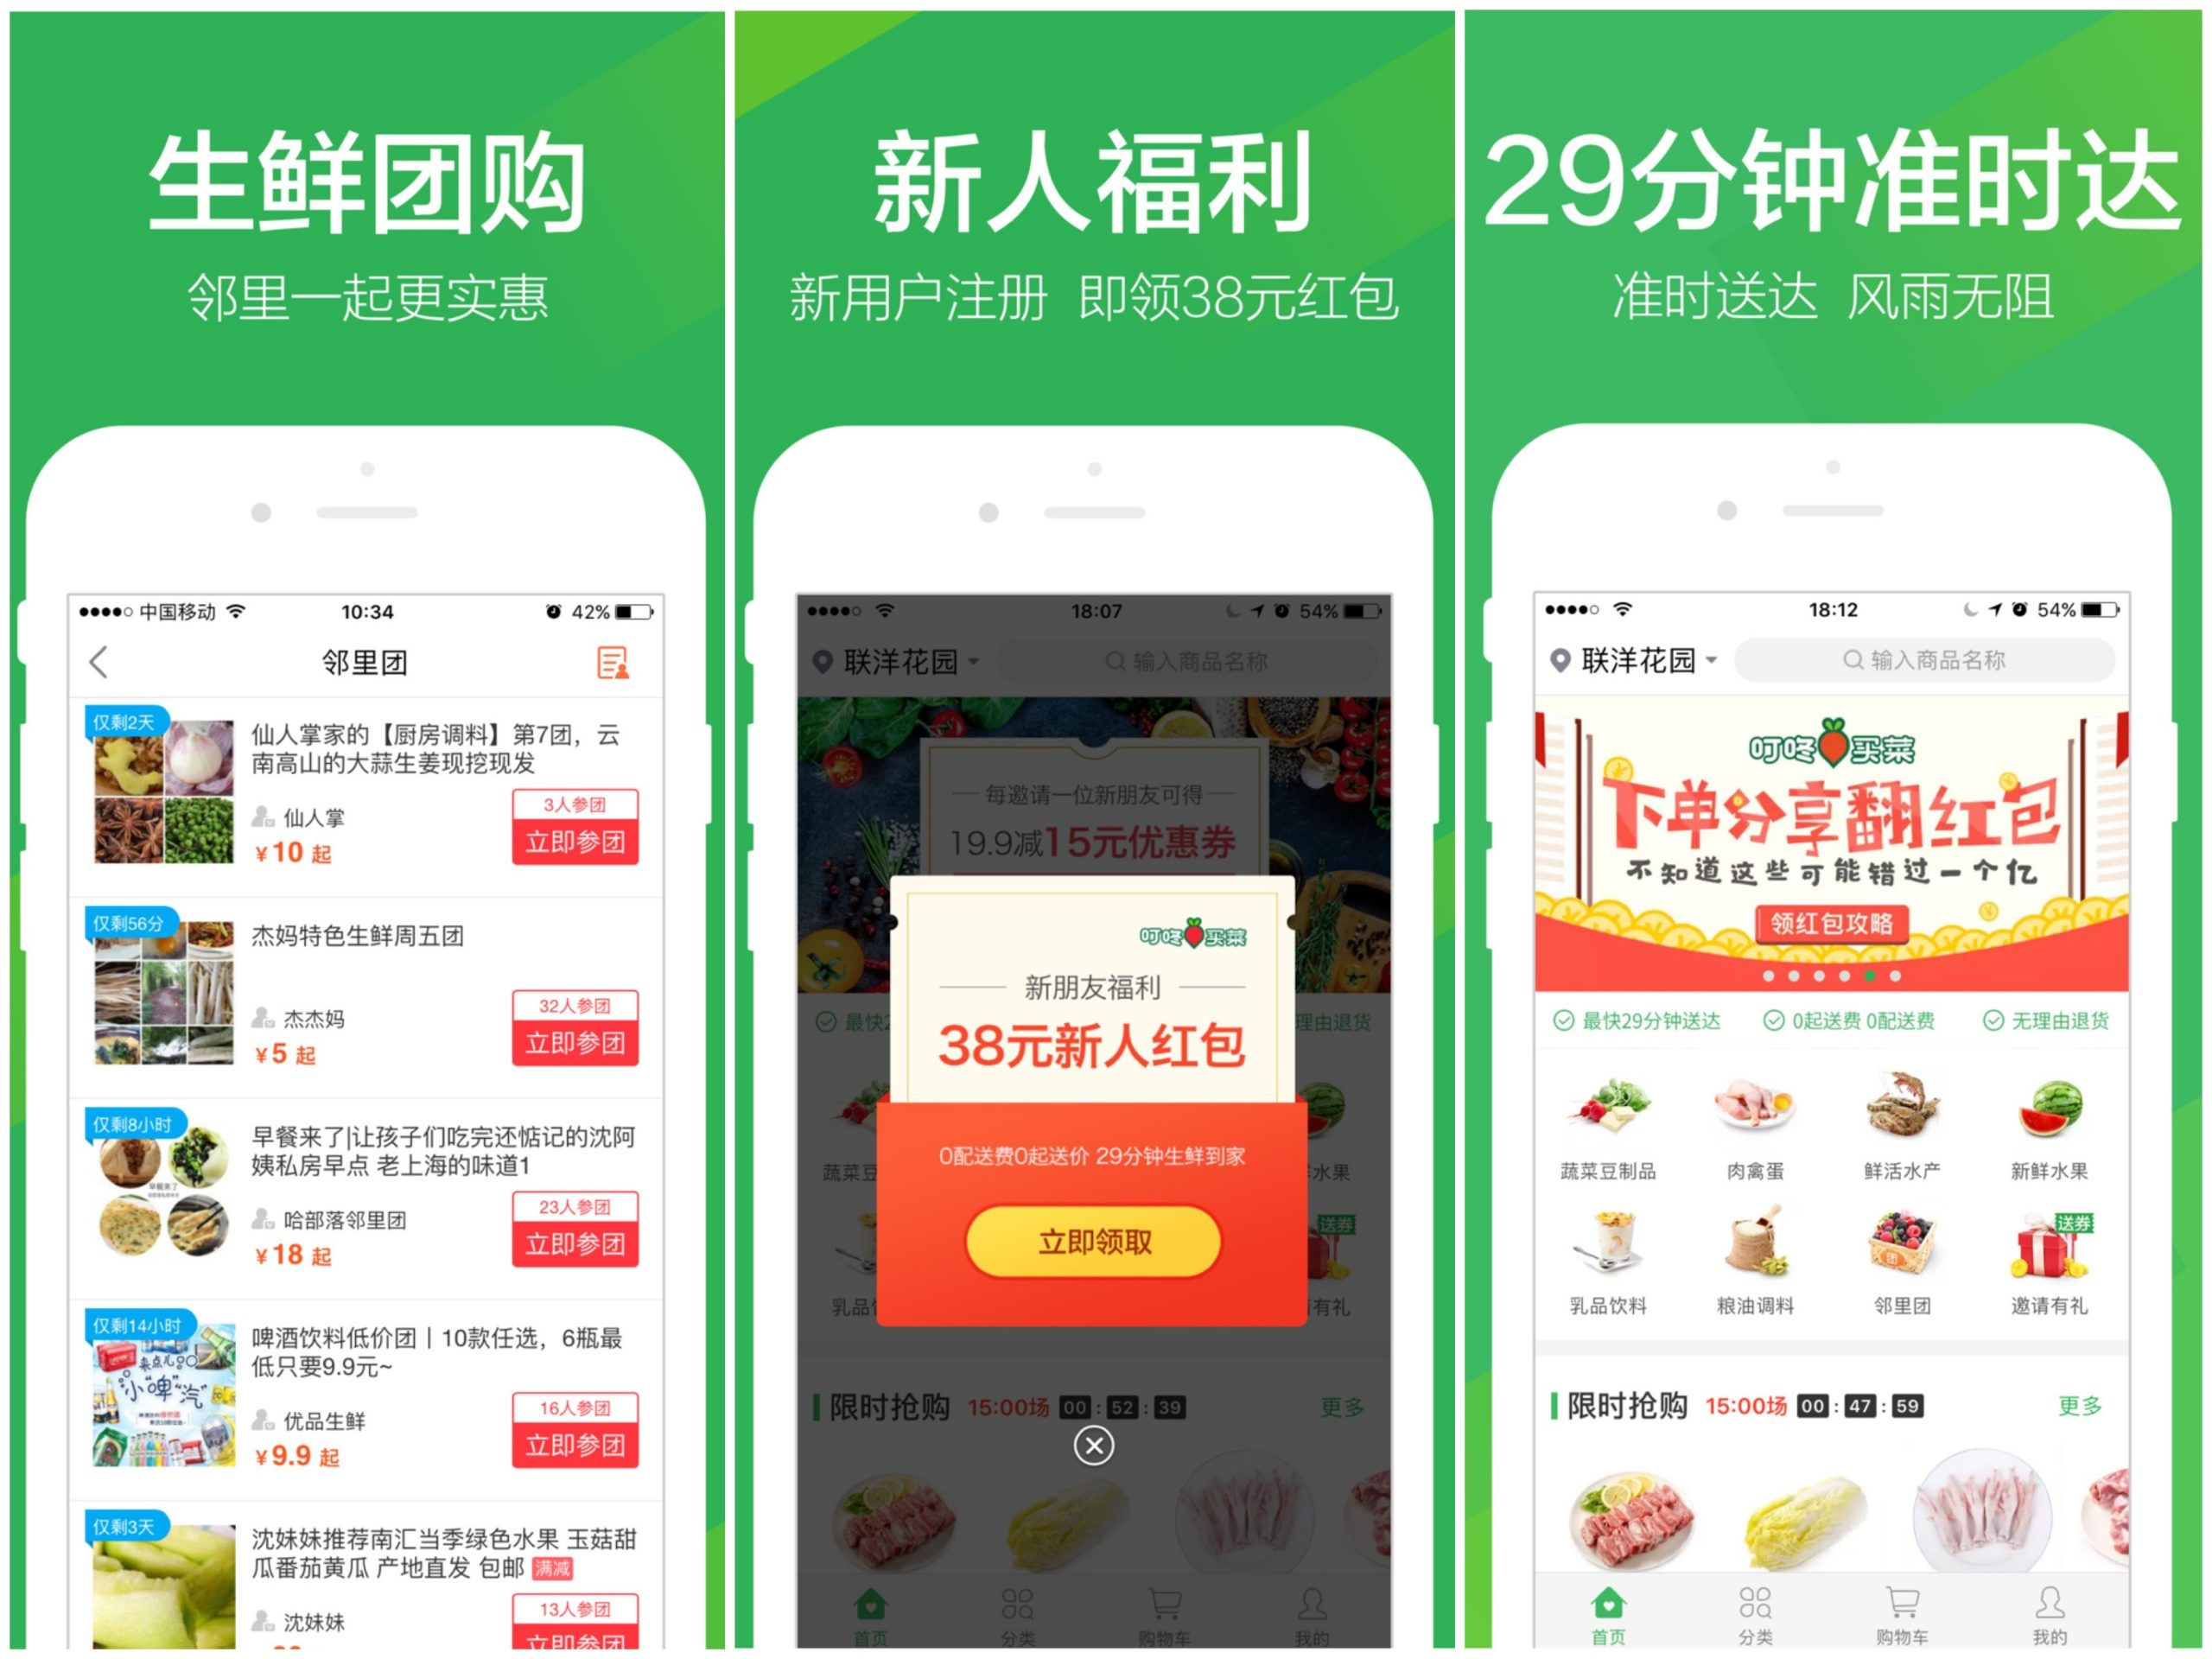 Image of article 'Grocery delivery: the Chinese startup leading the pack'